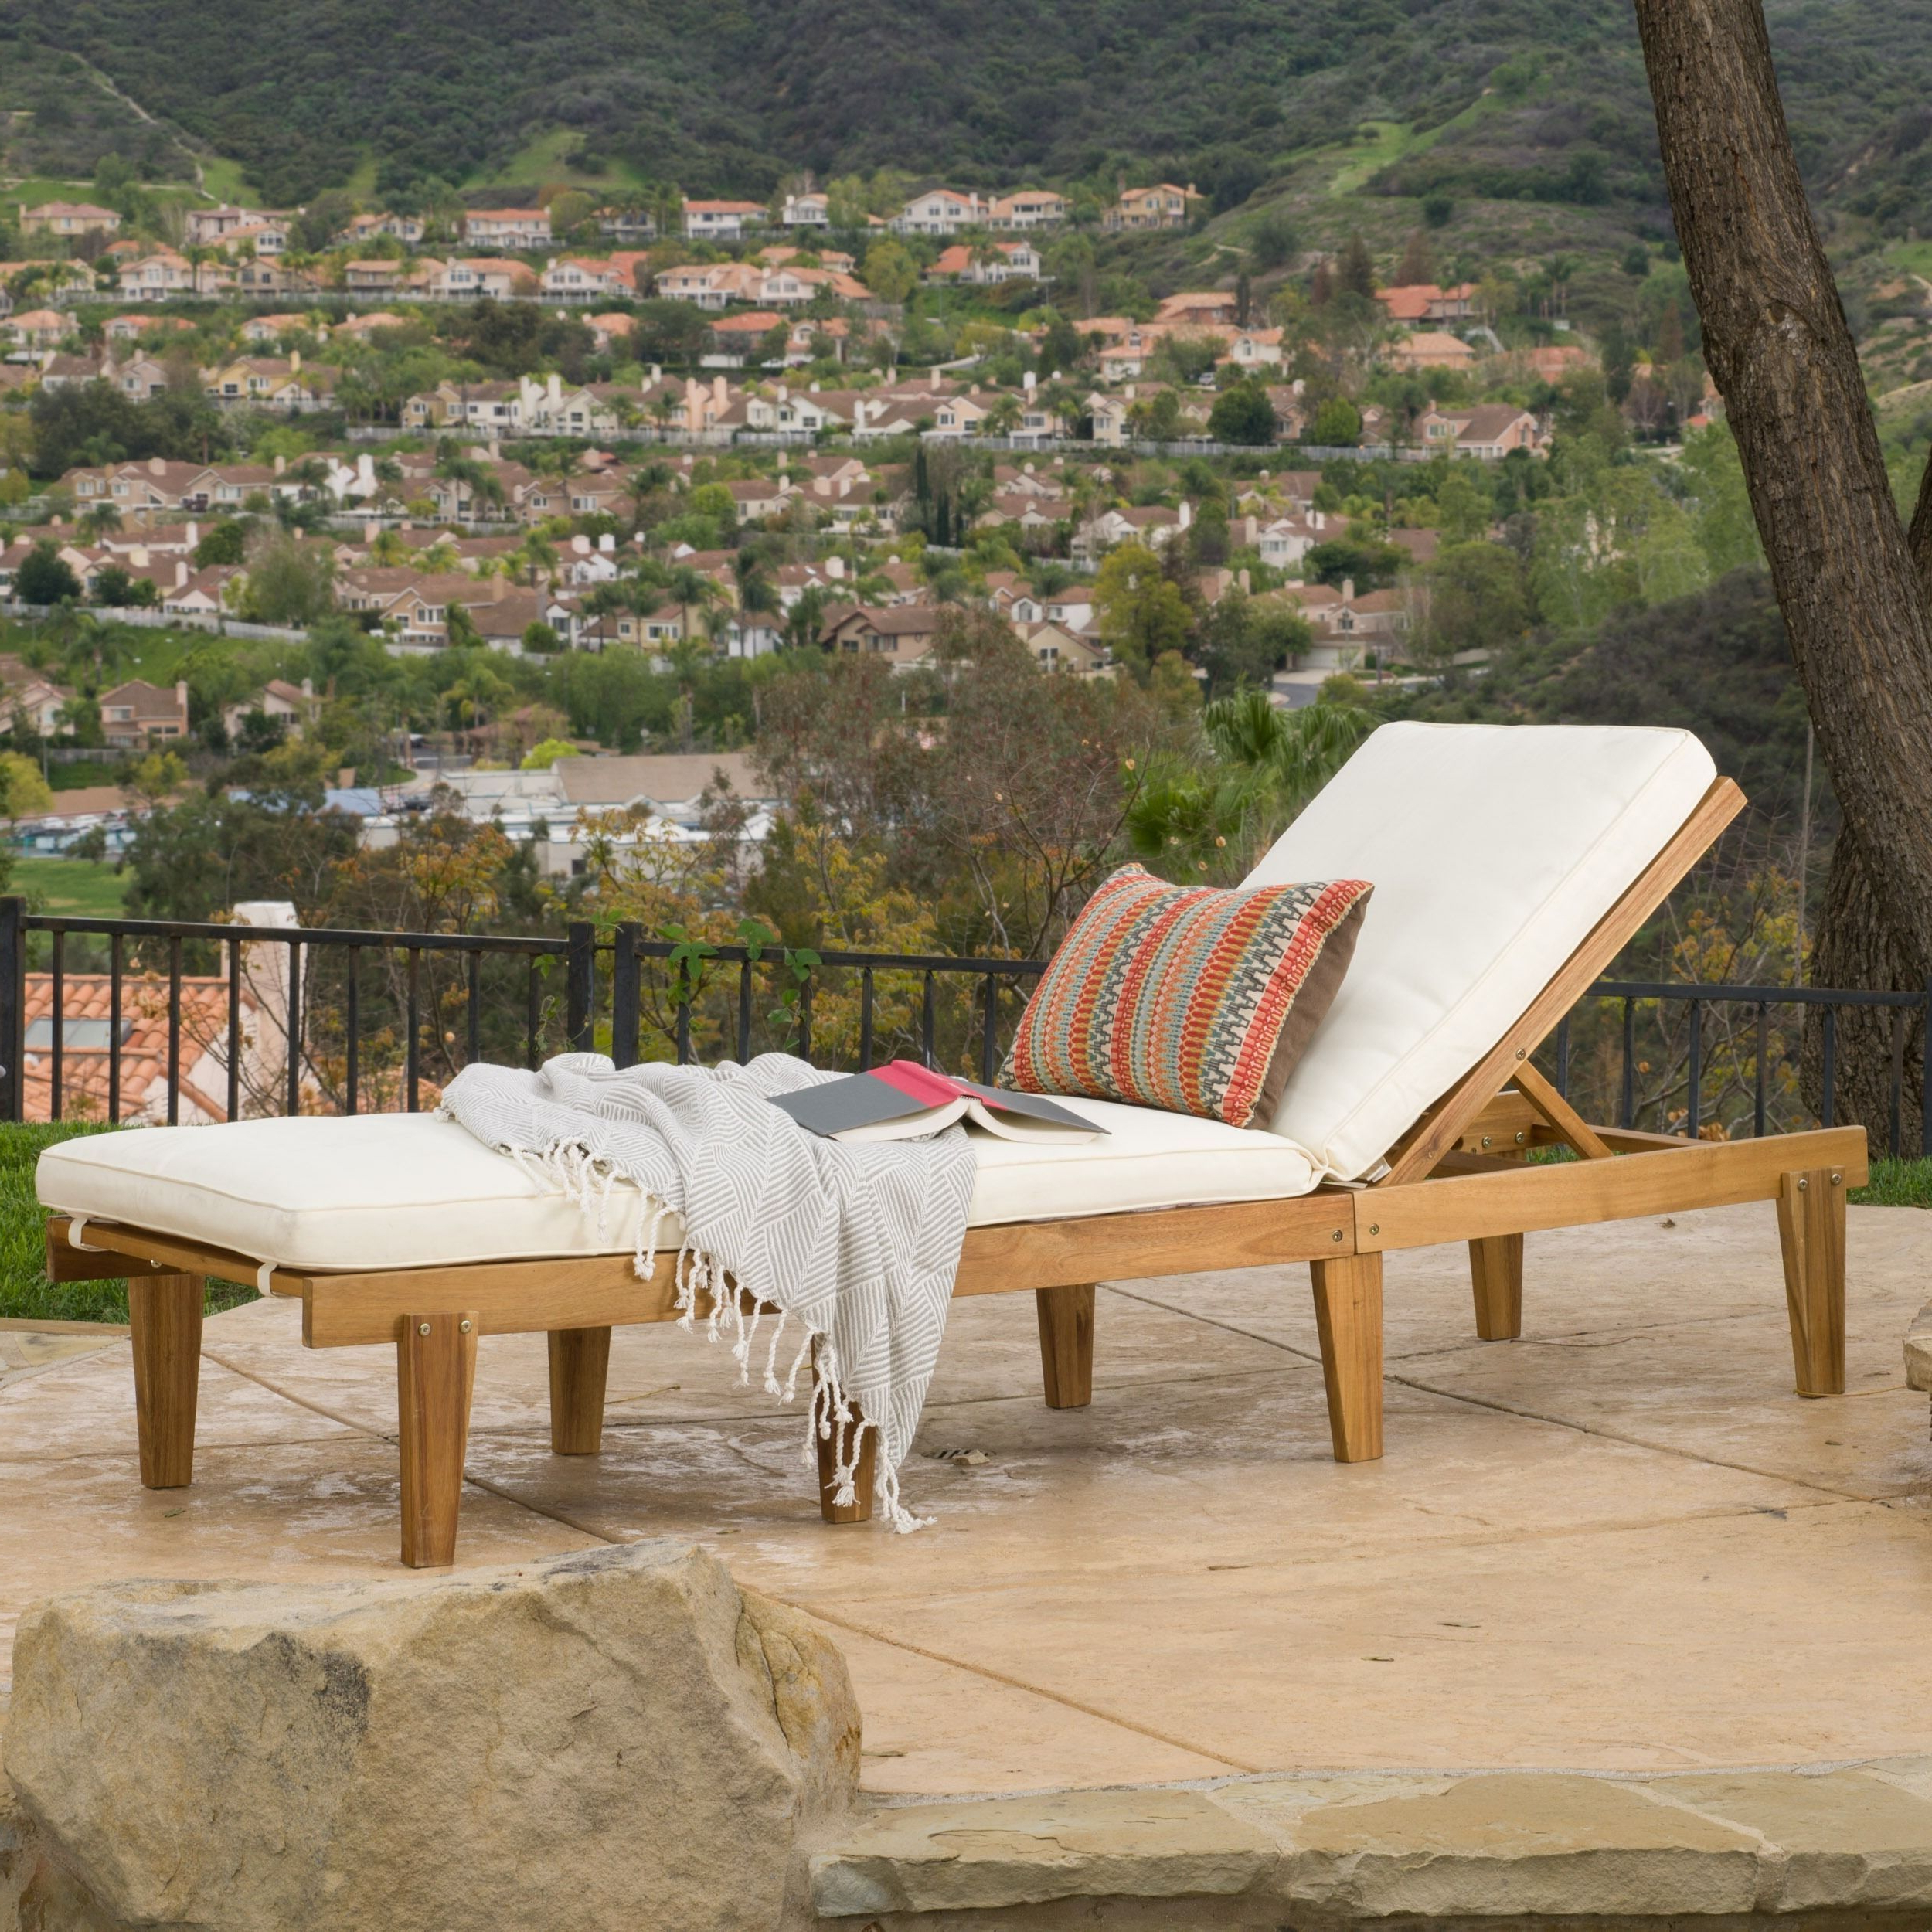 Perla Outdoor Acacia Wood Chaise Lounges With Current The Christopher Knight Home Ariana Chaise Lounge Makes For (View 25 of 25)